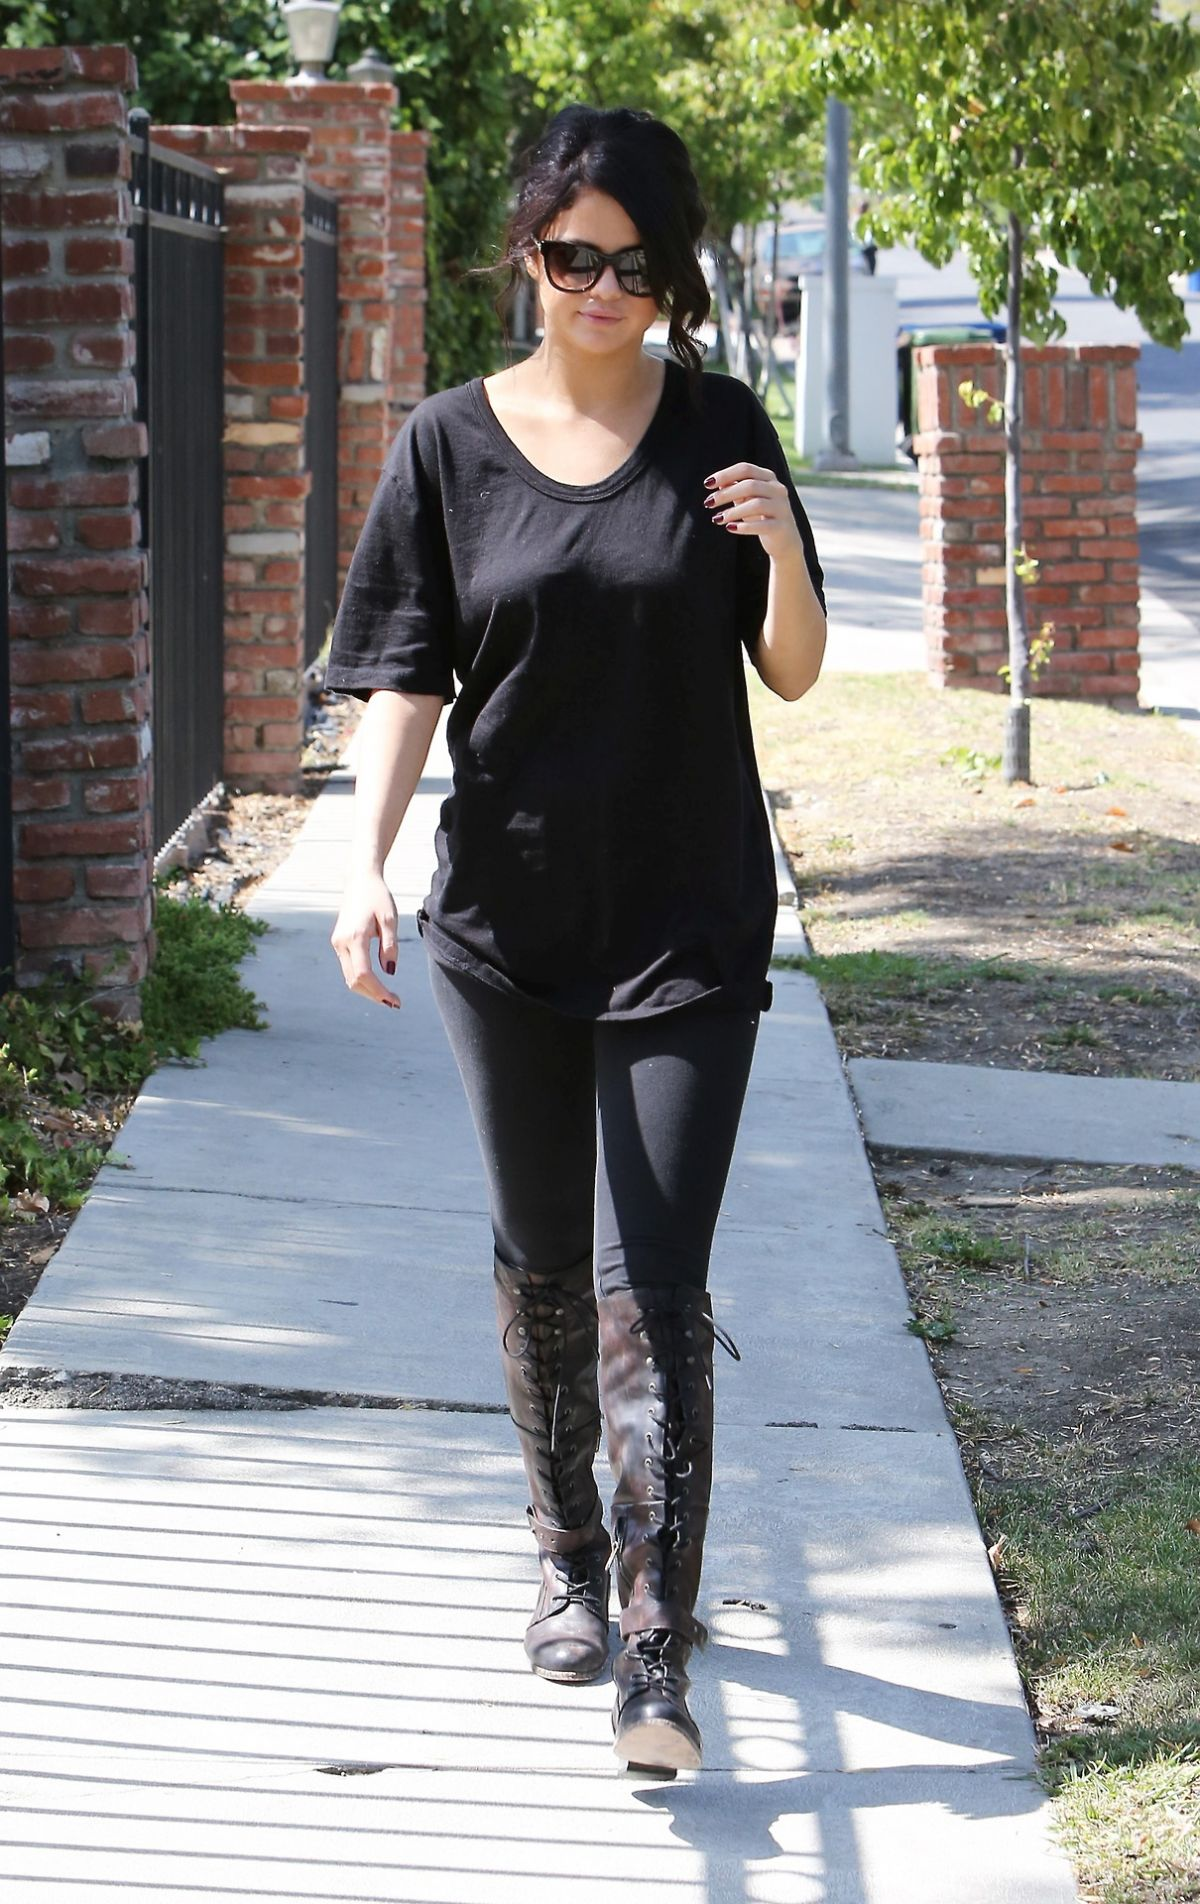 SELENA GOMEZ Out and About in Los Angeles 1206